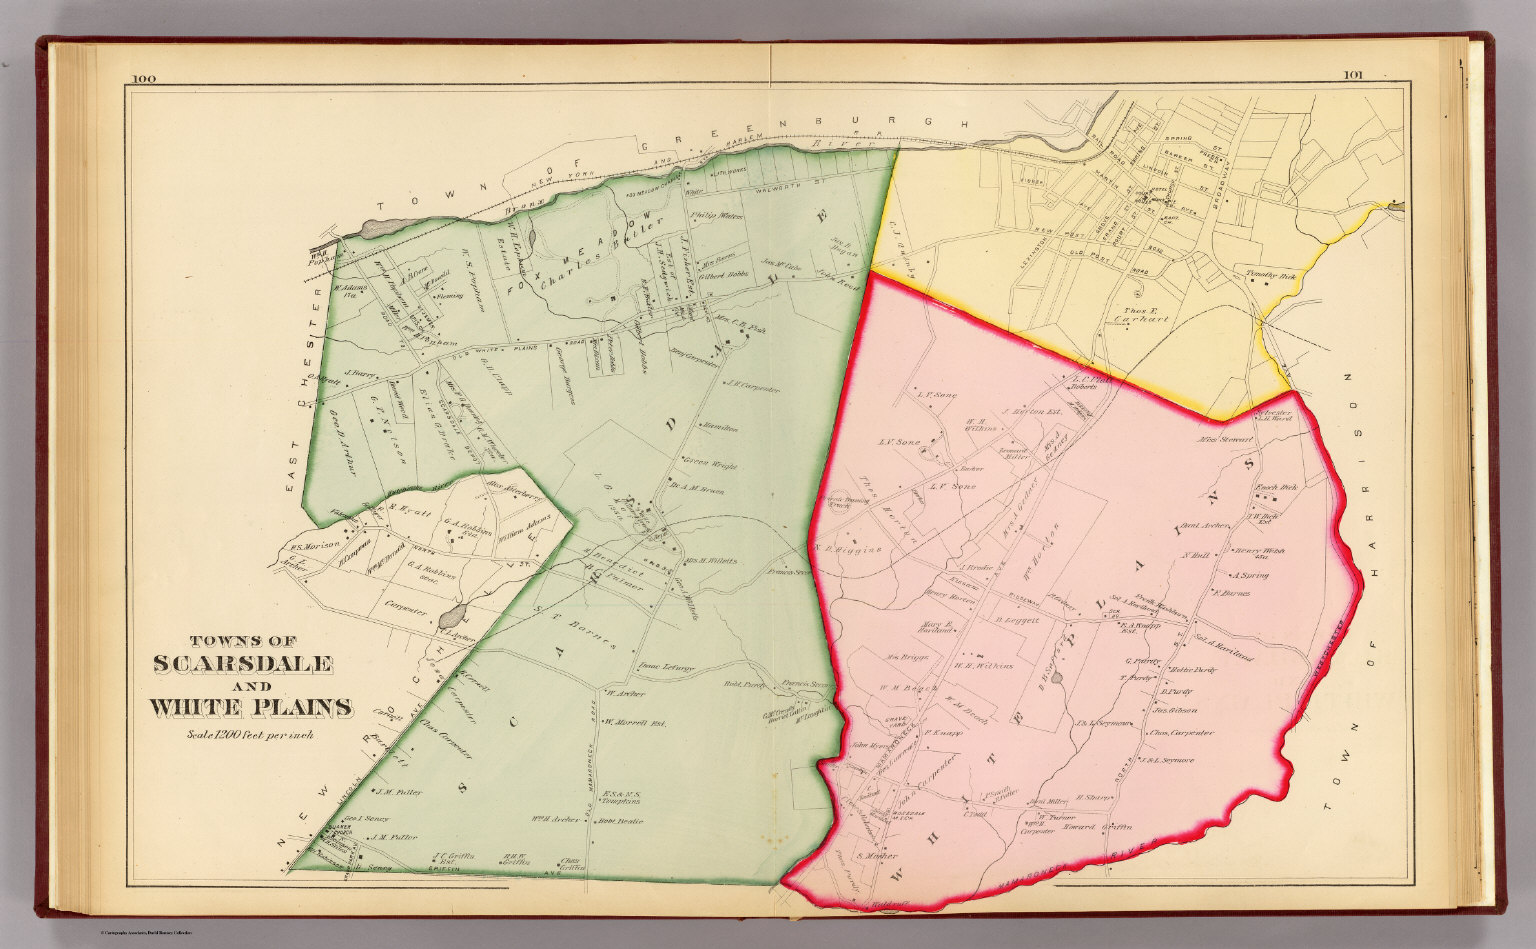 Towns of Scarsdale and White Plains, 1881.